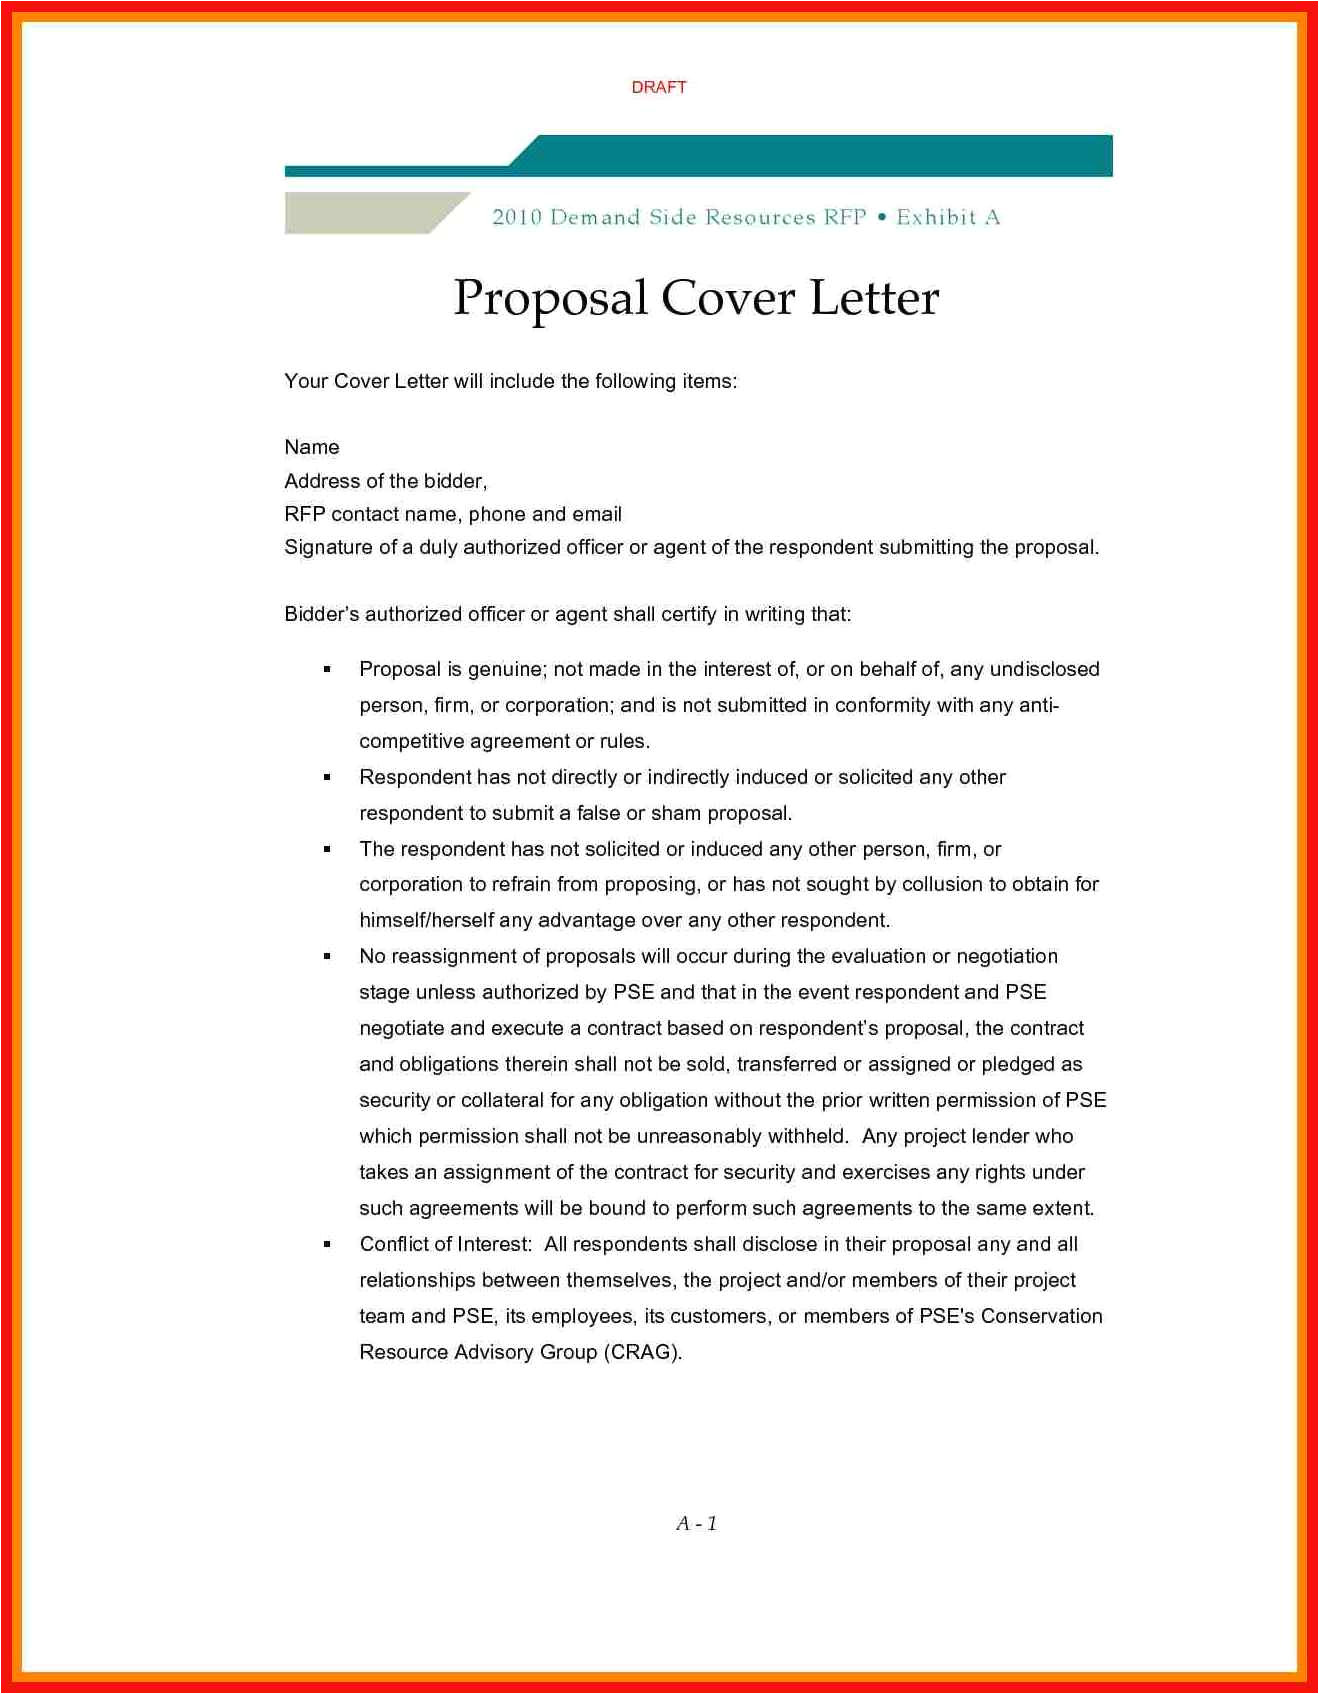 rfp cover letter template